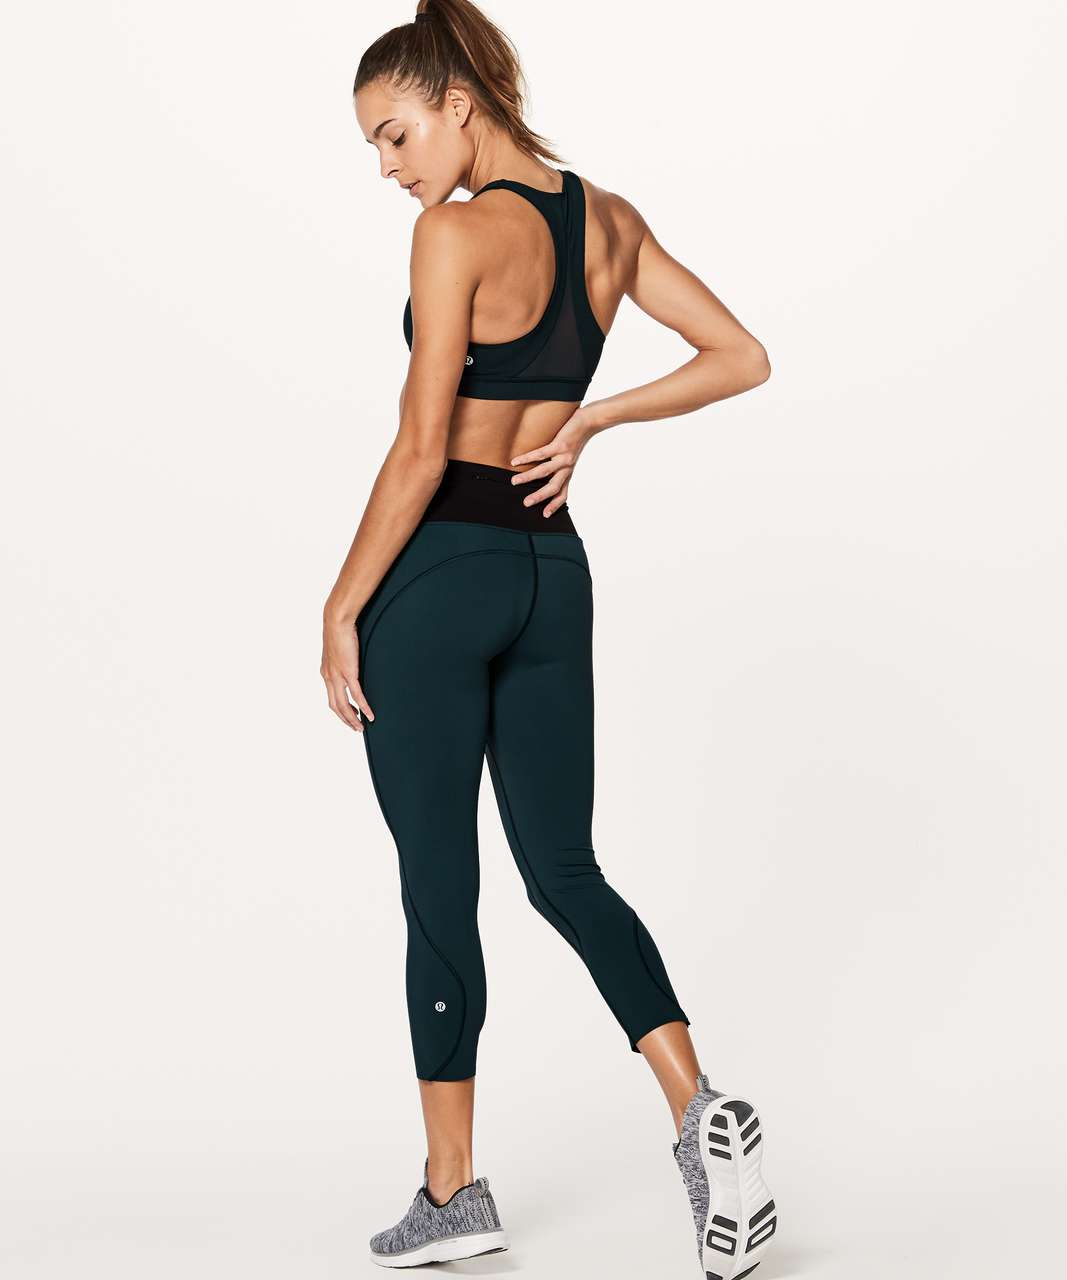 e0767b7164 Lululemon Run The Day Crop (17